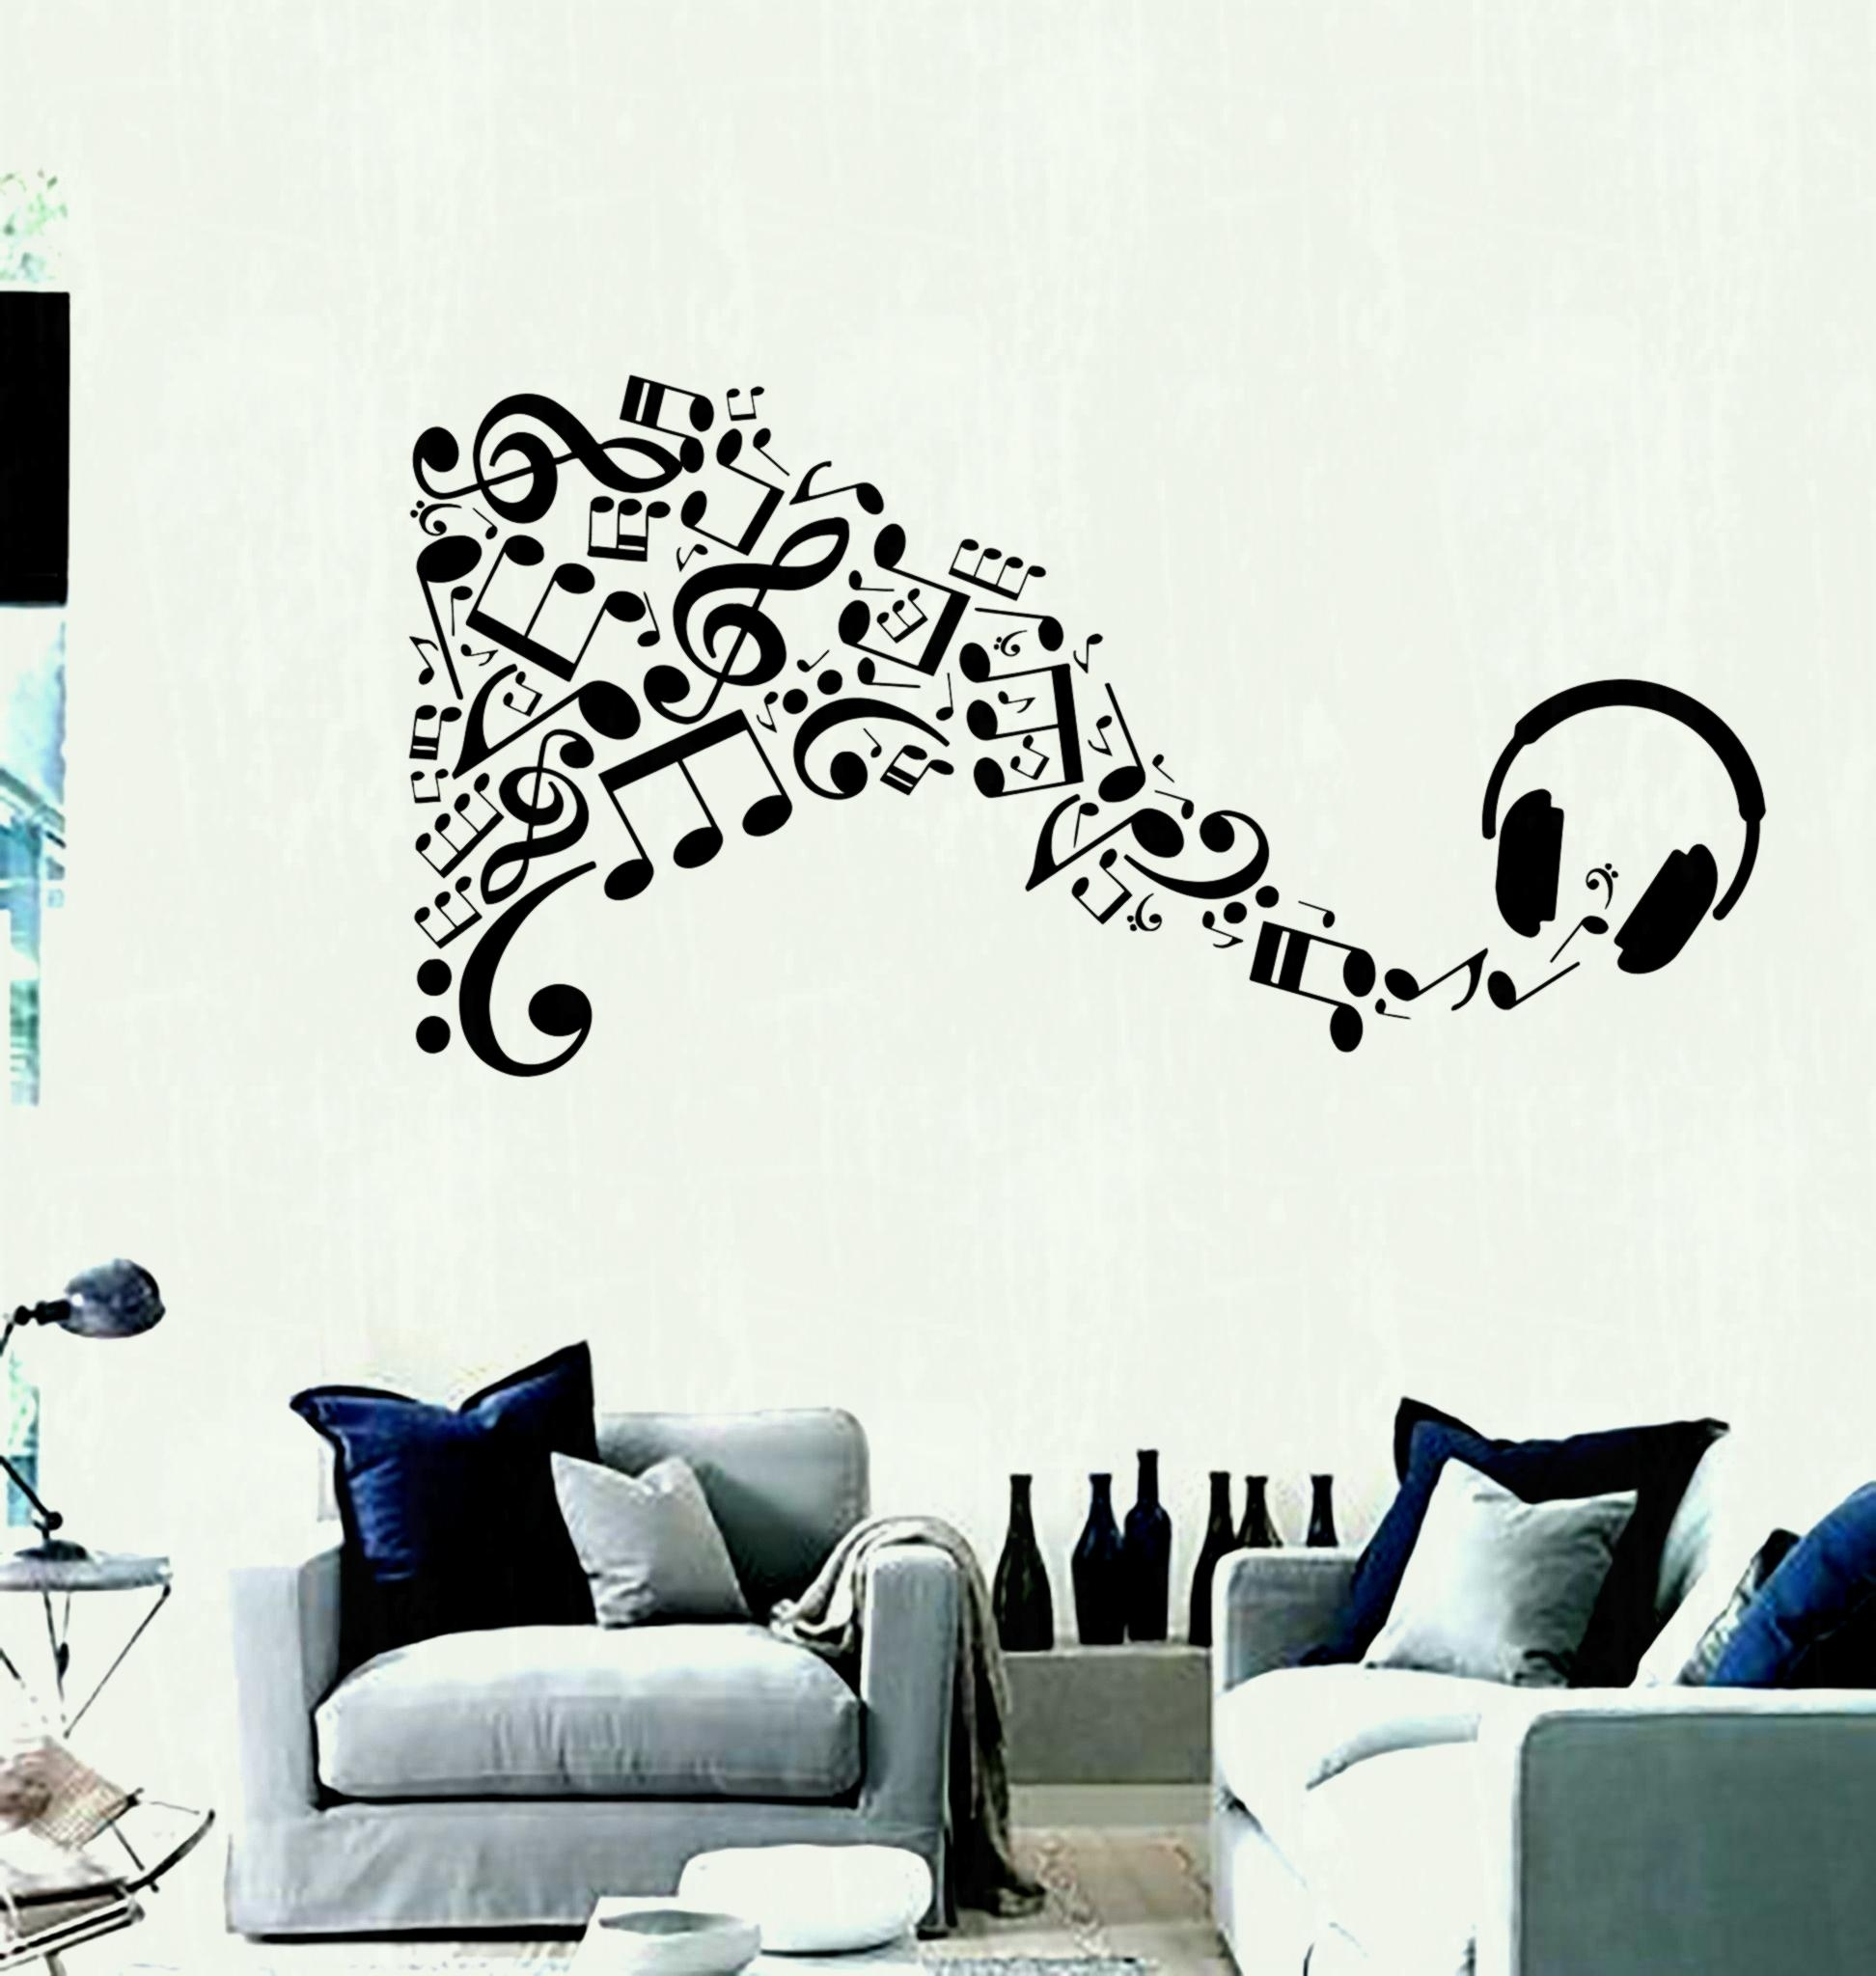 Living Room : Creative Painting Ideas For Walls With White Wall Within Most Recently Released Art For Walls (Gallery 7 of 20)